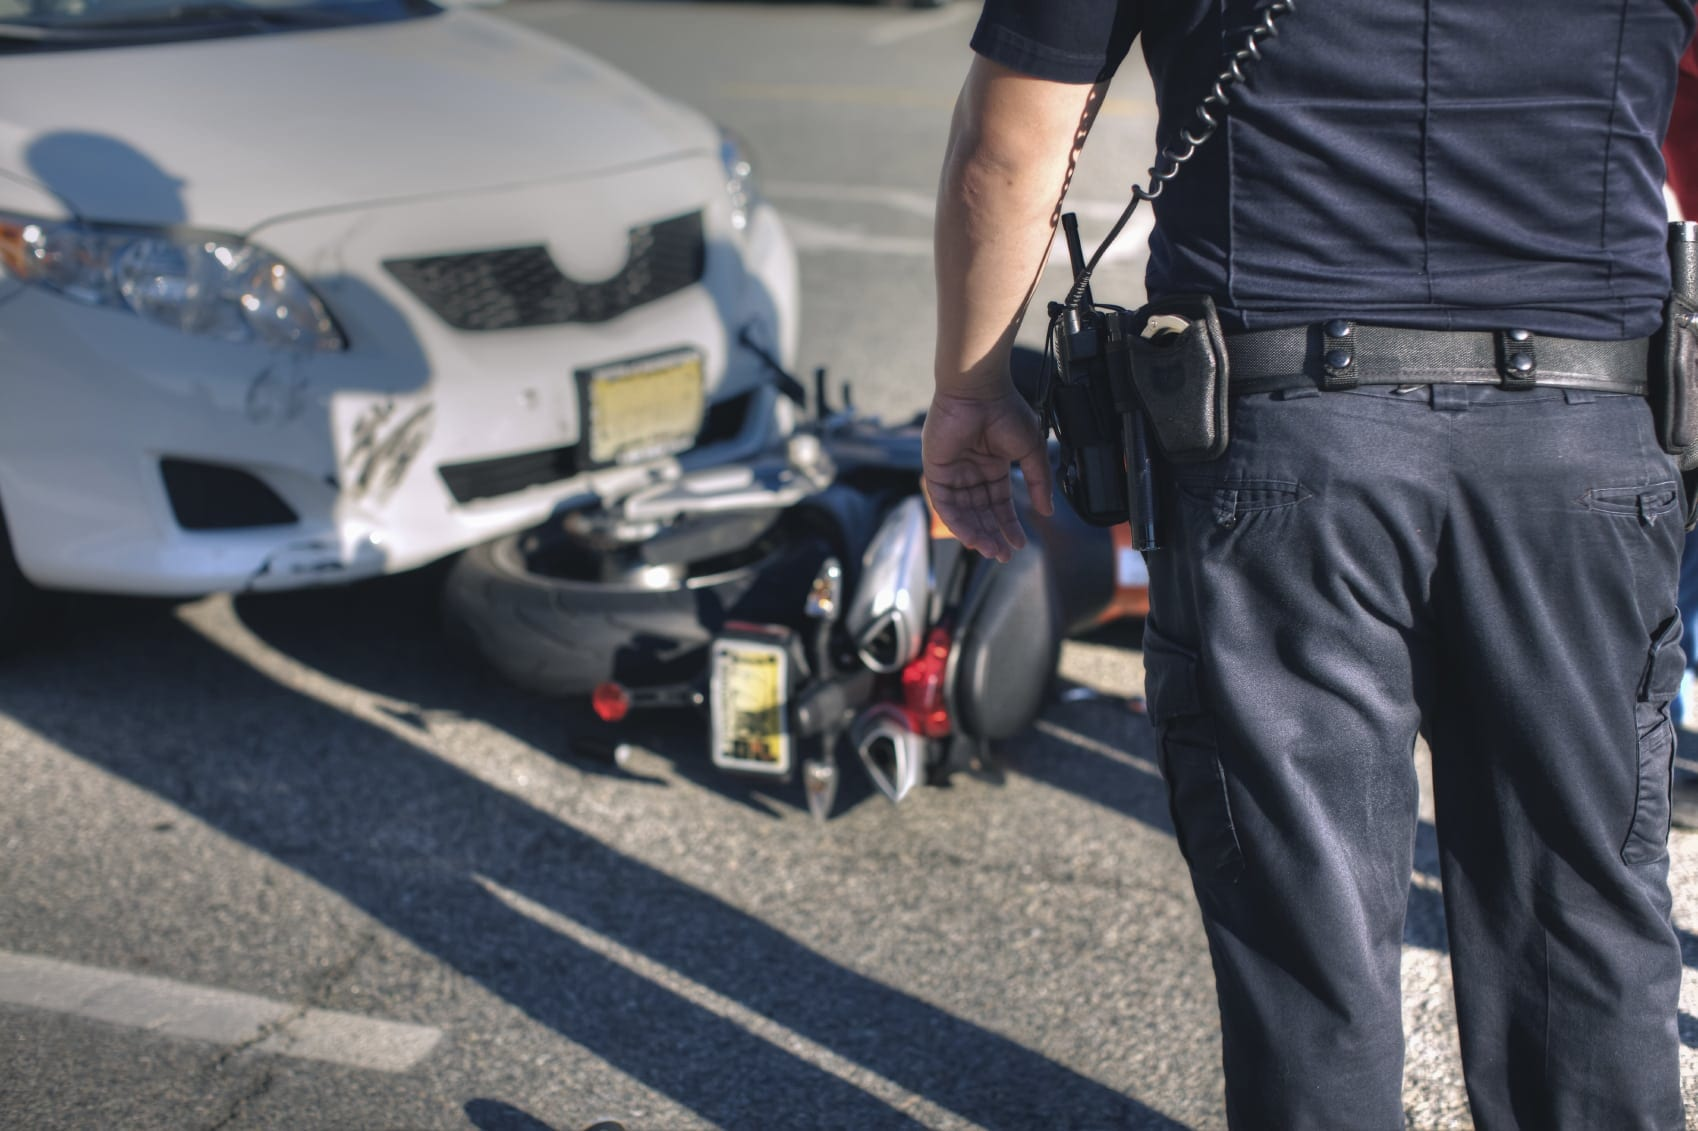 Police Officer Inspecting Motorcycle Accident Stock Photo